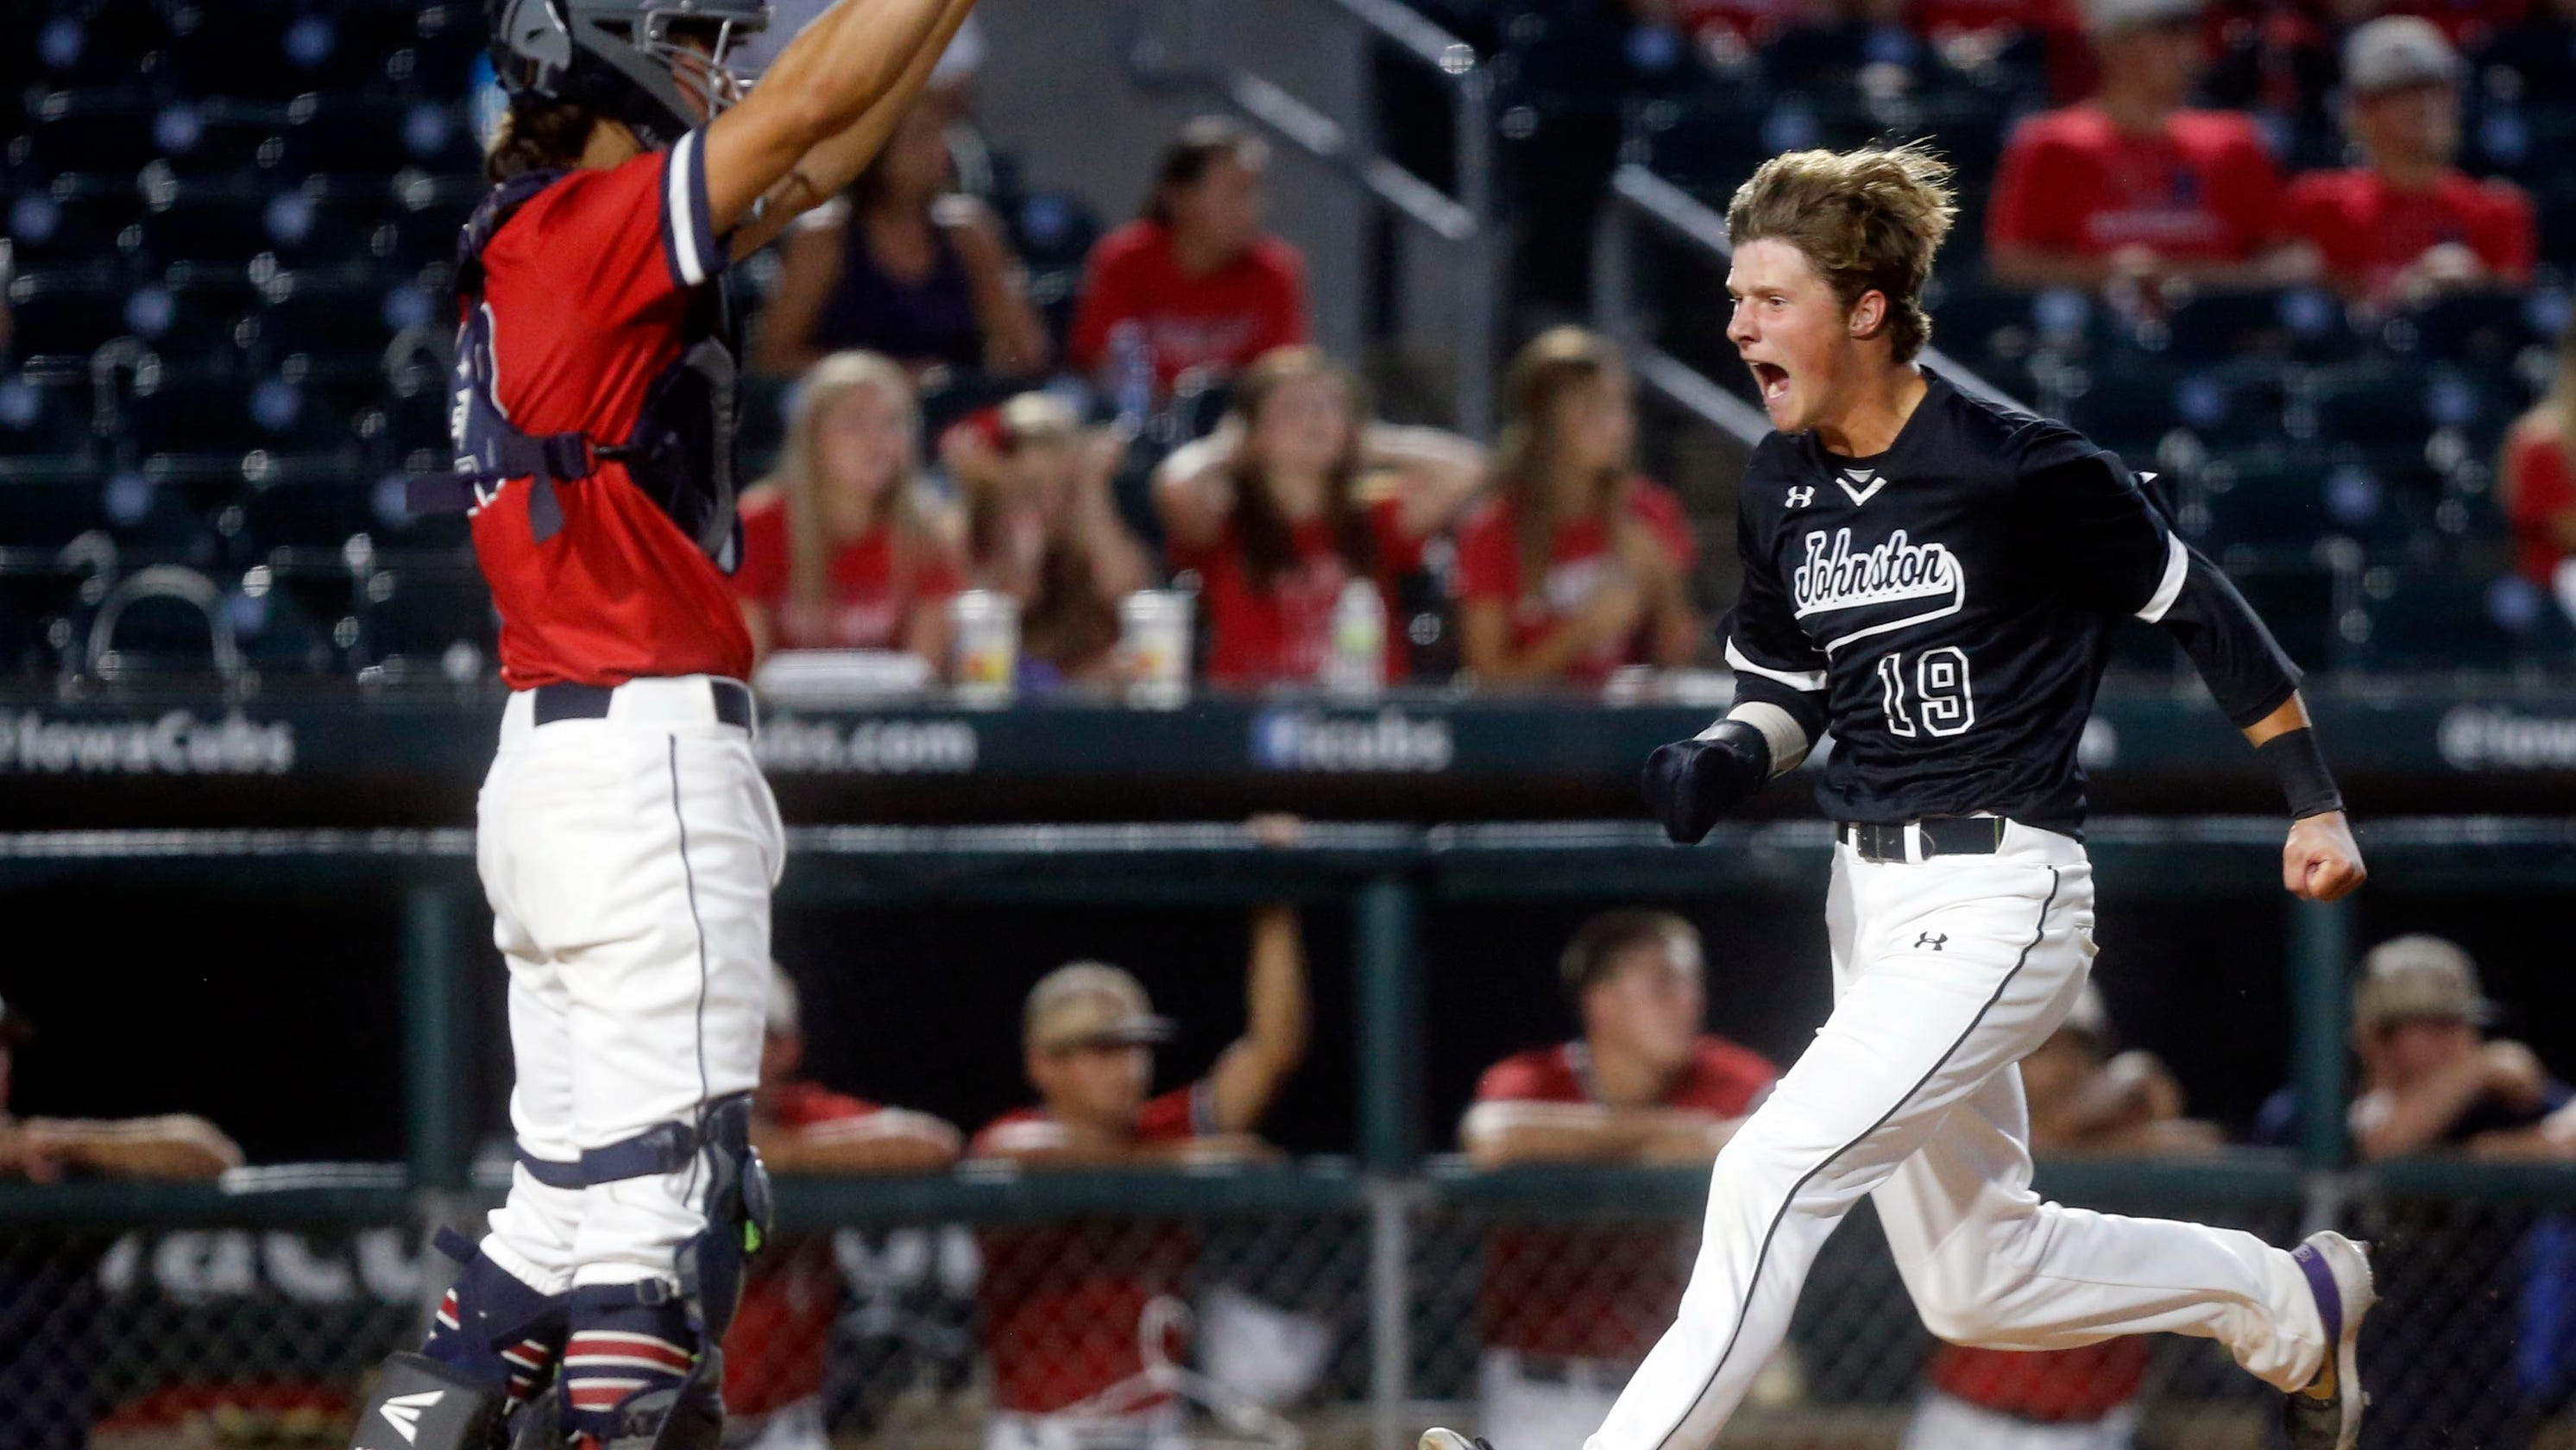 State Baseball: Johnston defeats rival Urbandale to advance to Class 4A title game